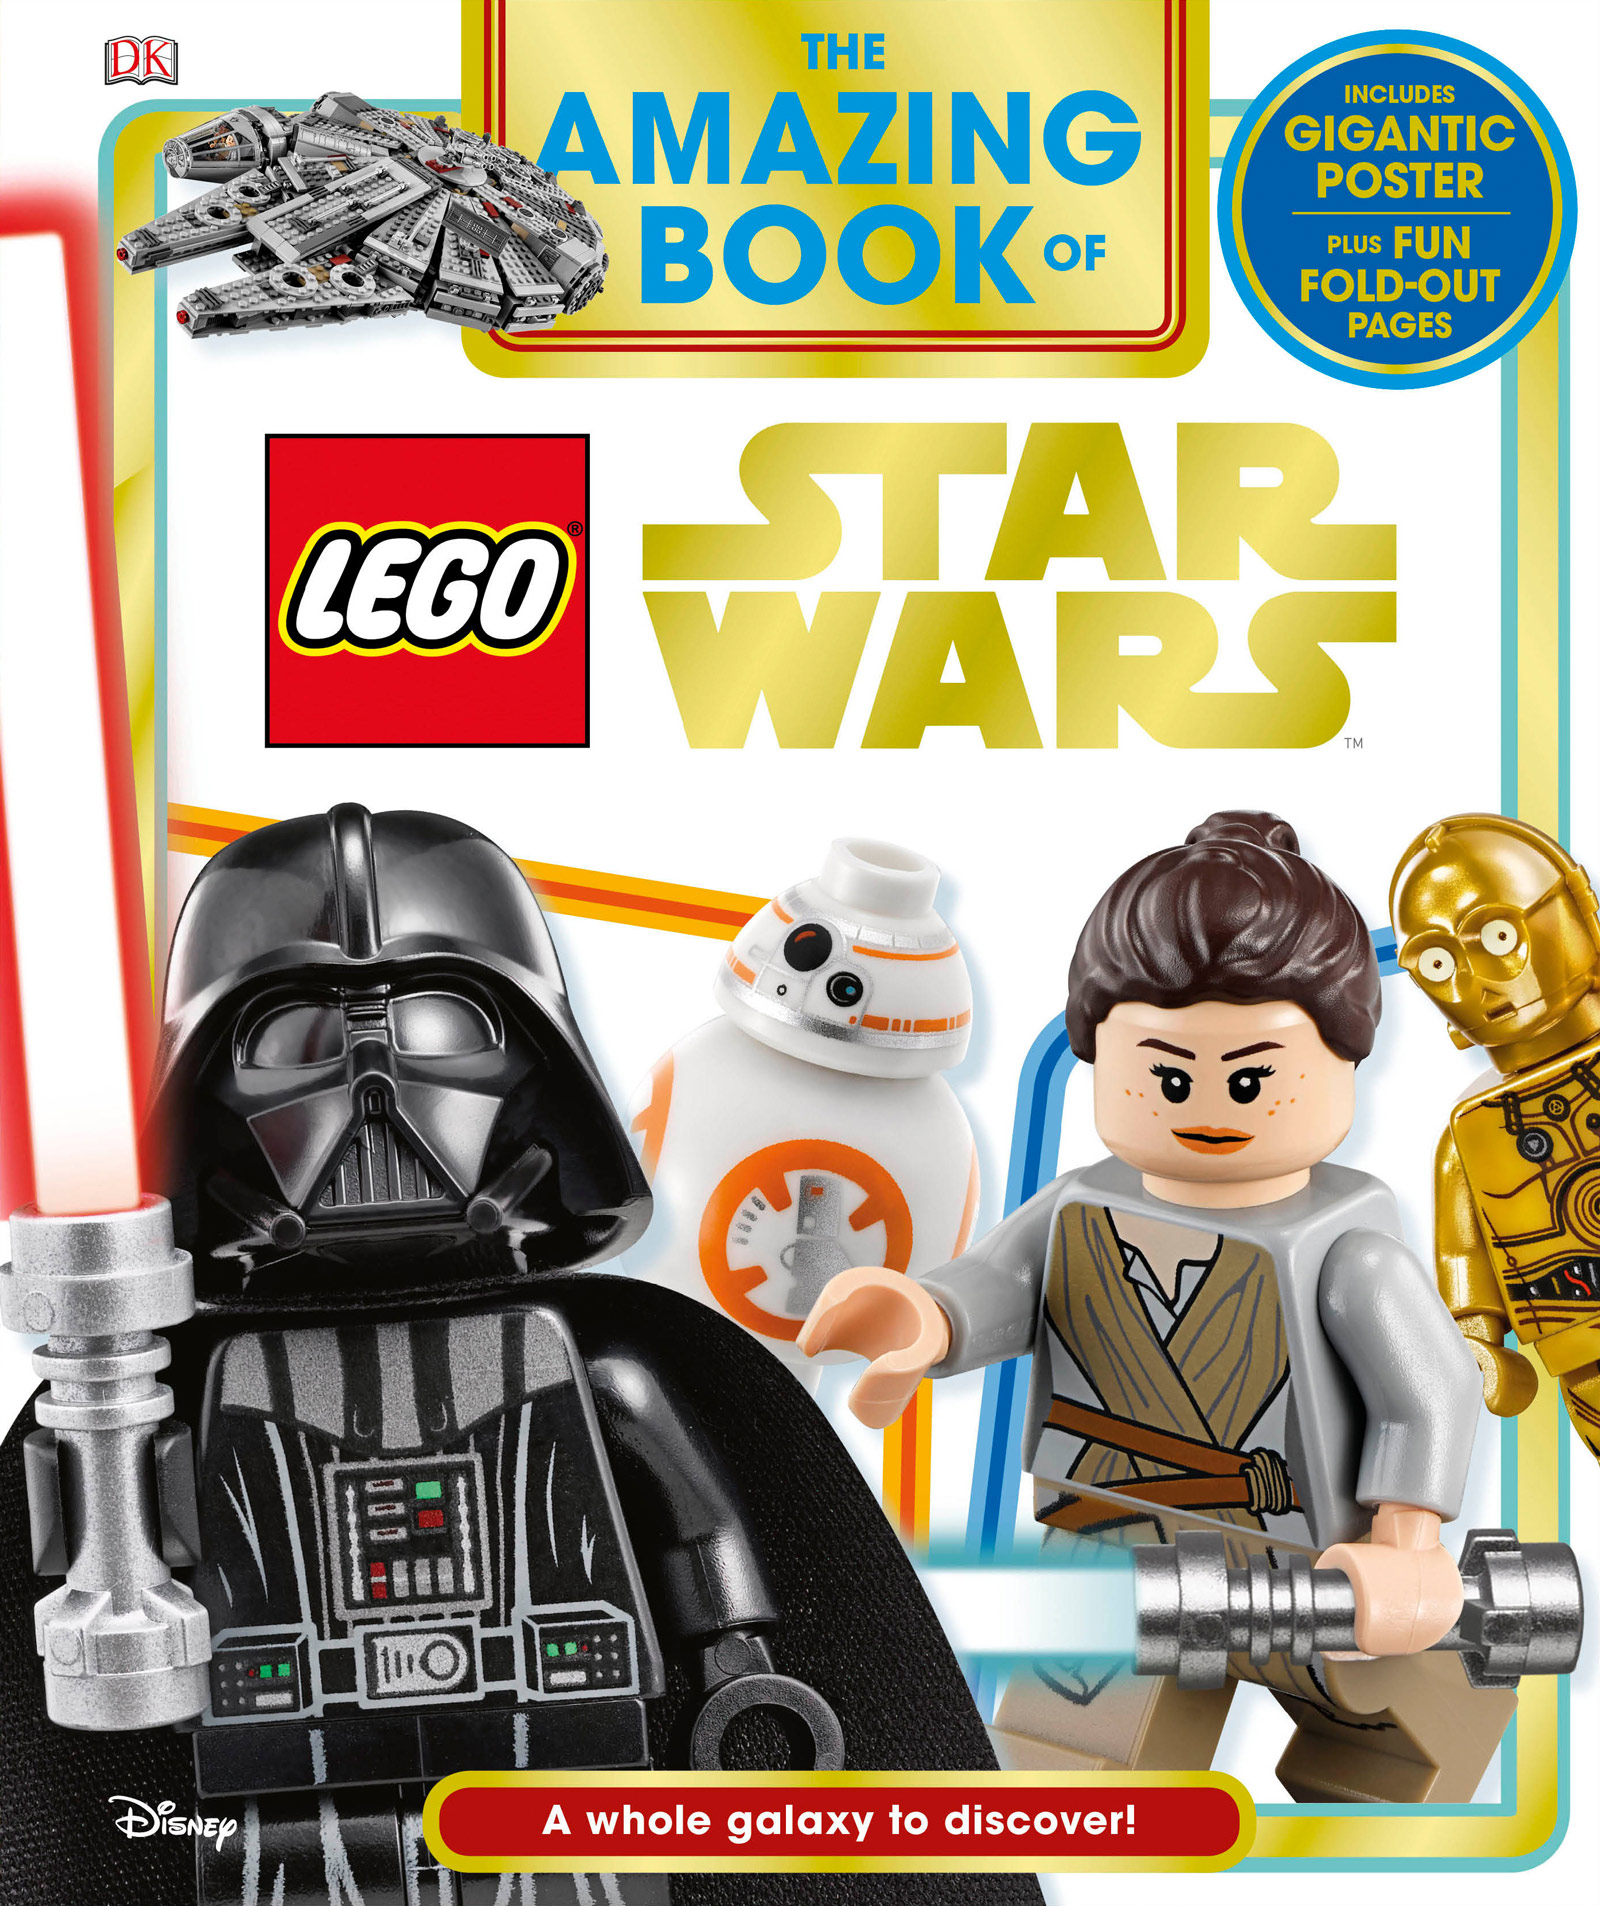 new galaxy guides get a first look at dk 39 s star wars visual encyclopedia and the amazing book. Black Bedroom Furniture Sets. Home Design Ideas